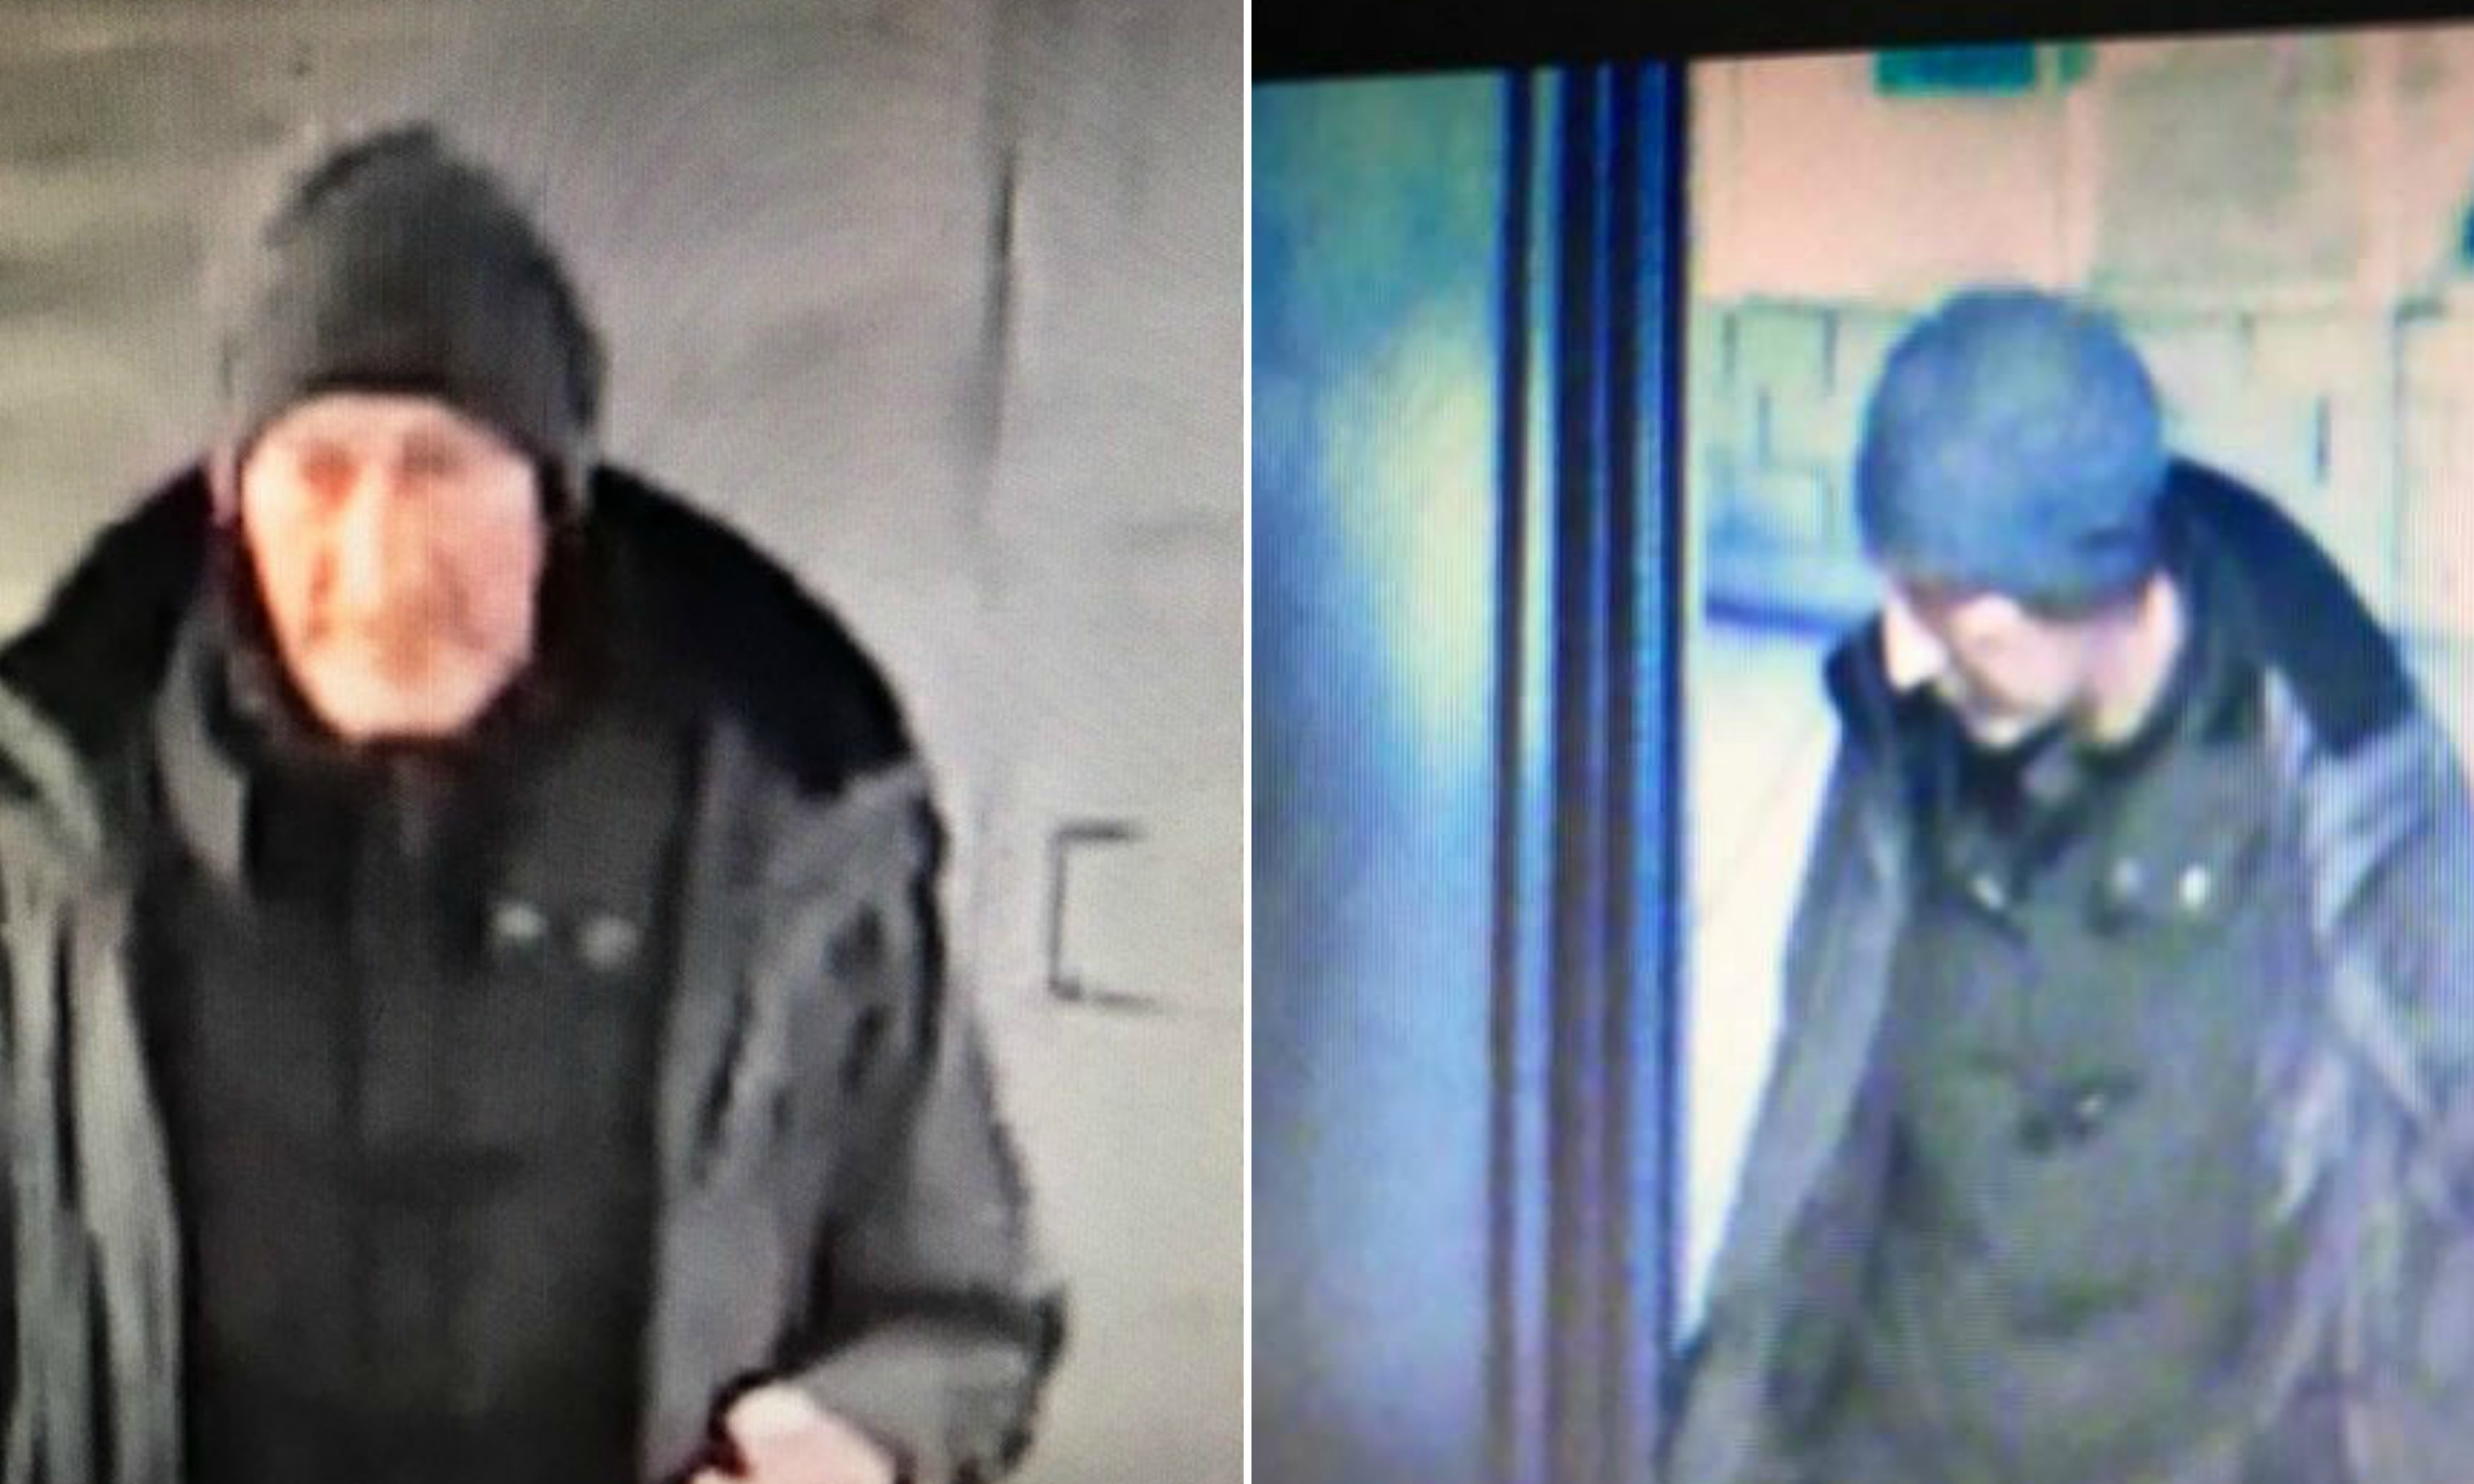 Police are seeking to identify this man following an incident on the Tay Road Bridge.